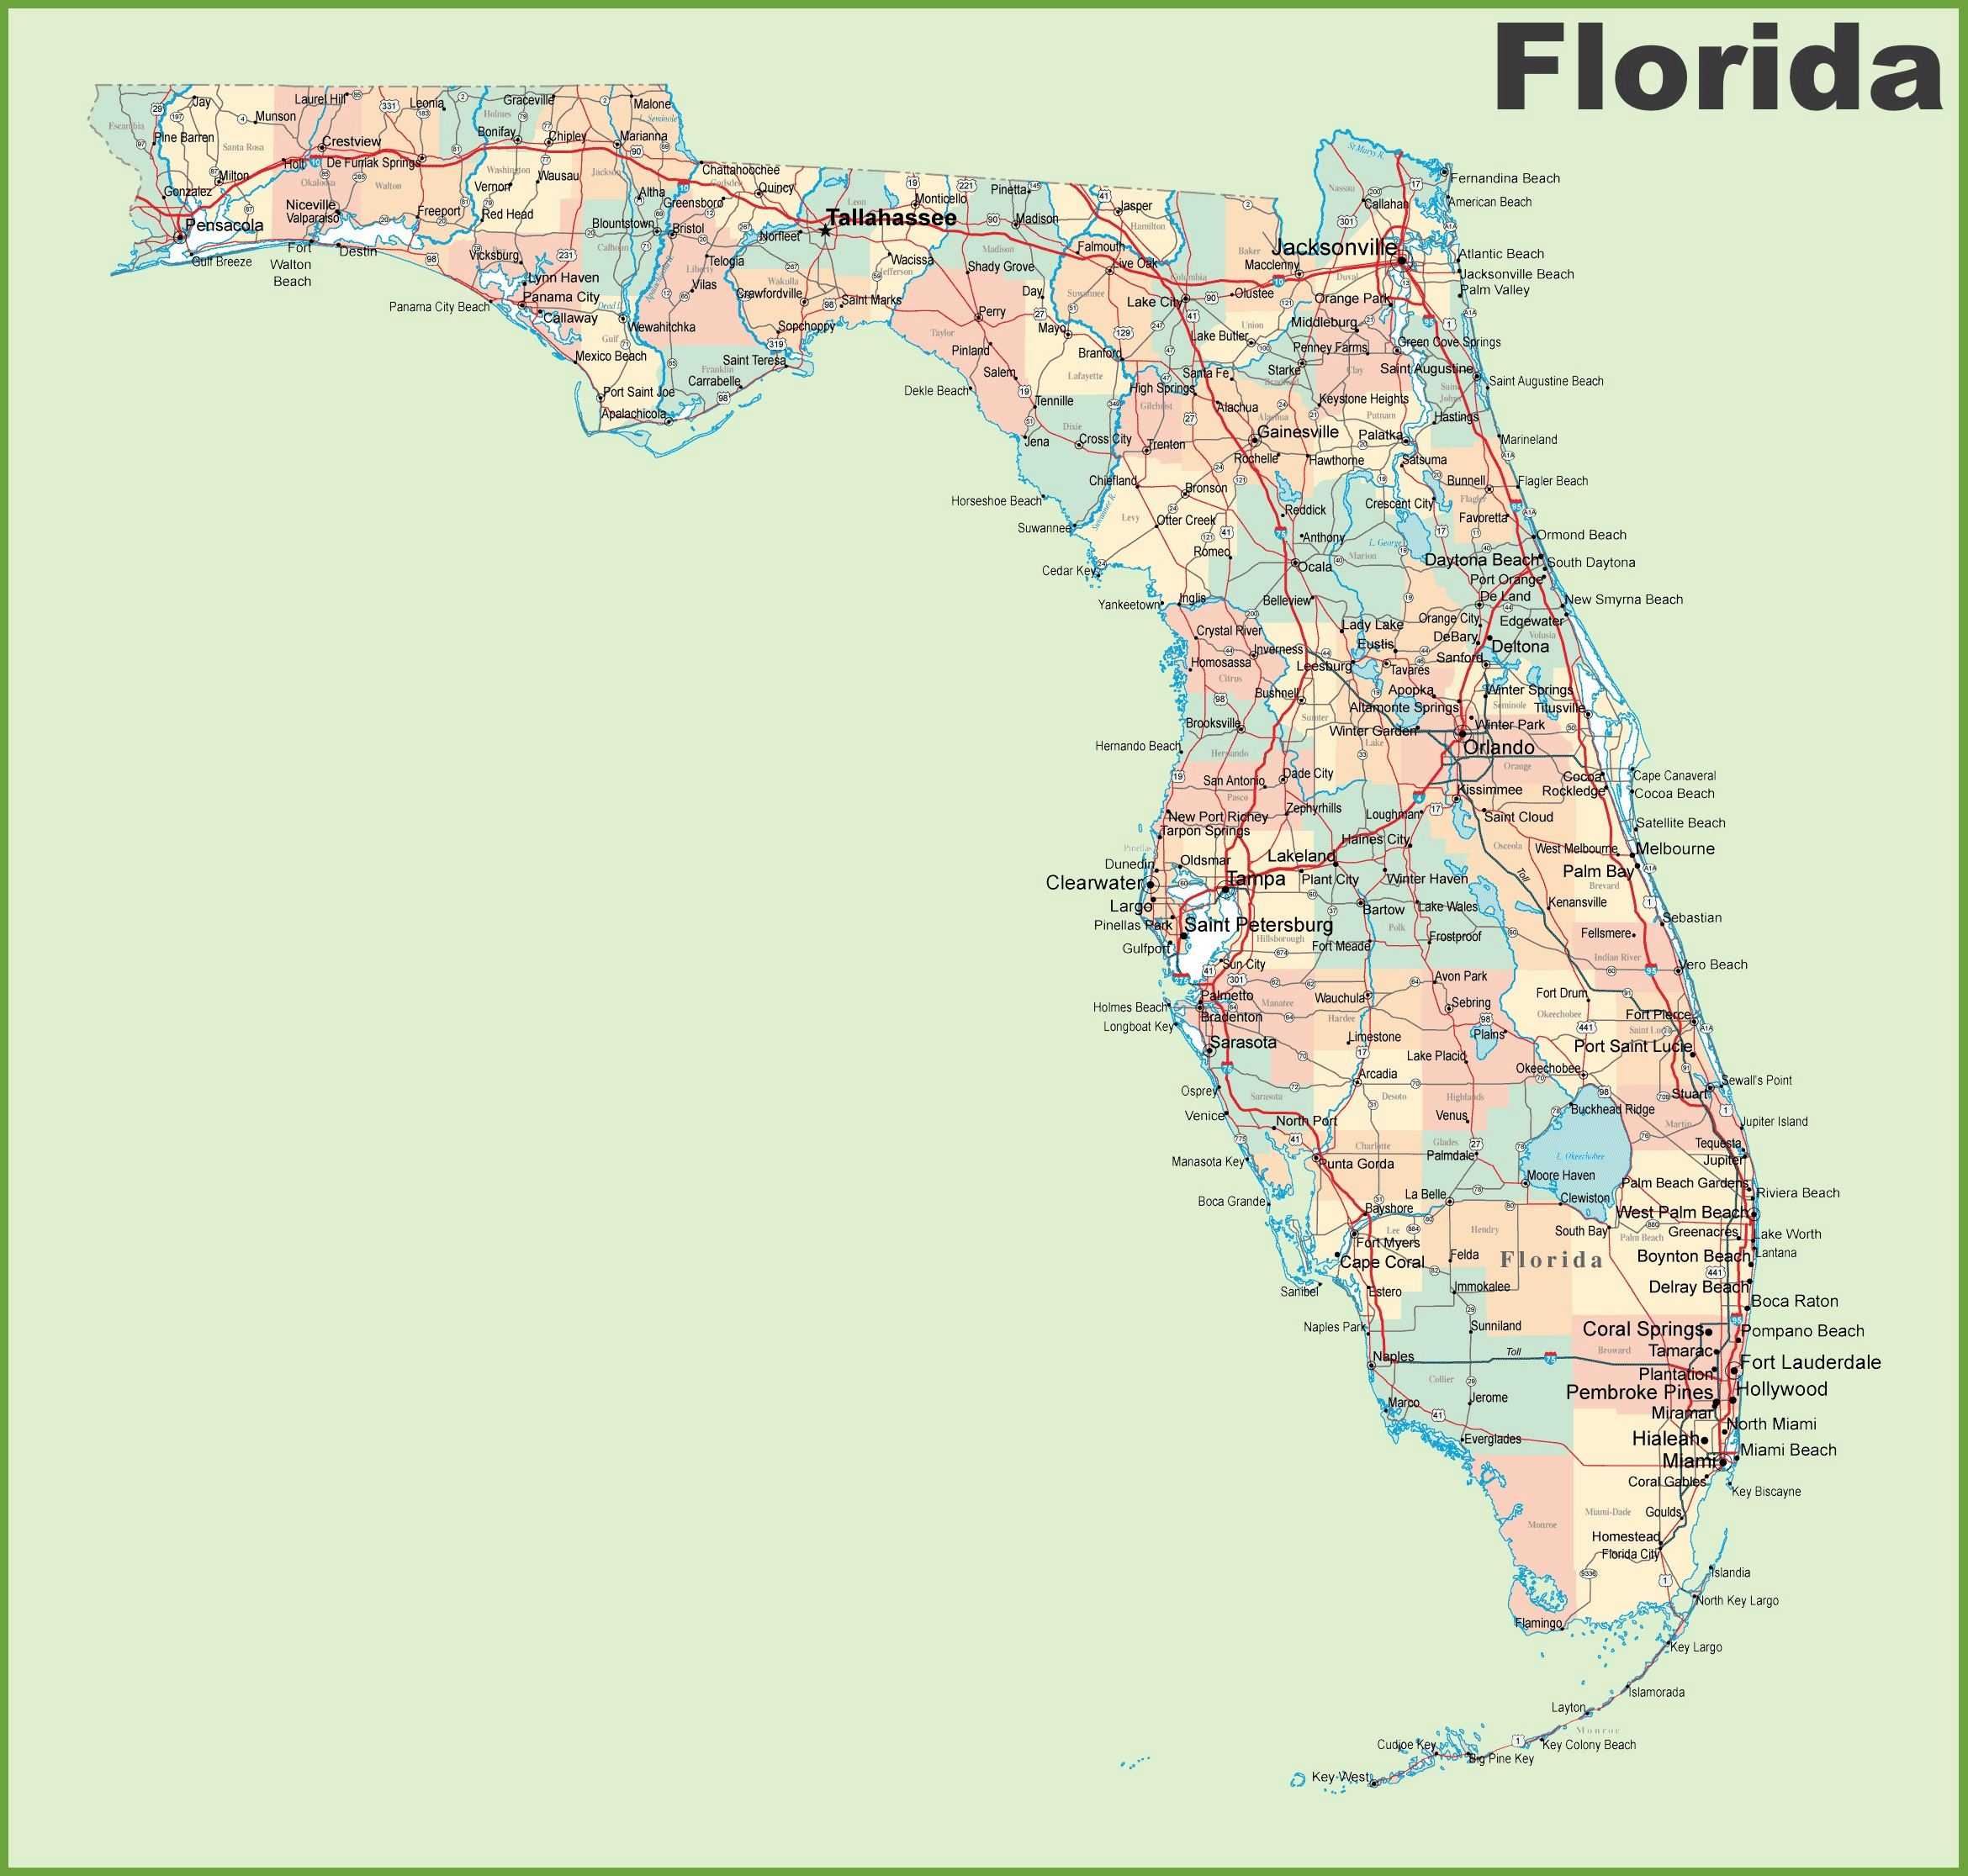 Large Florida Maps For Free Download And Print | High-Resolution And - Best Beaches Gulf Coast Florida Map